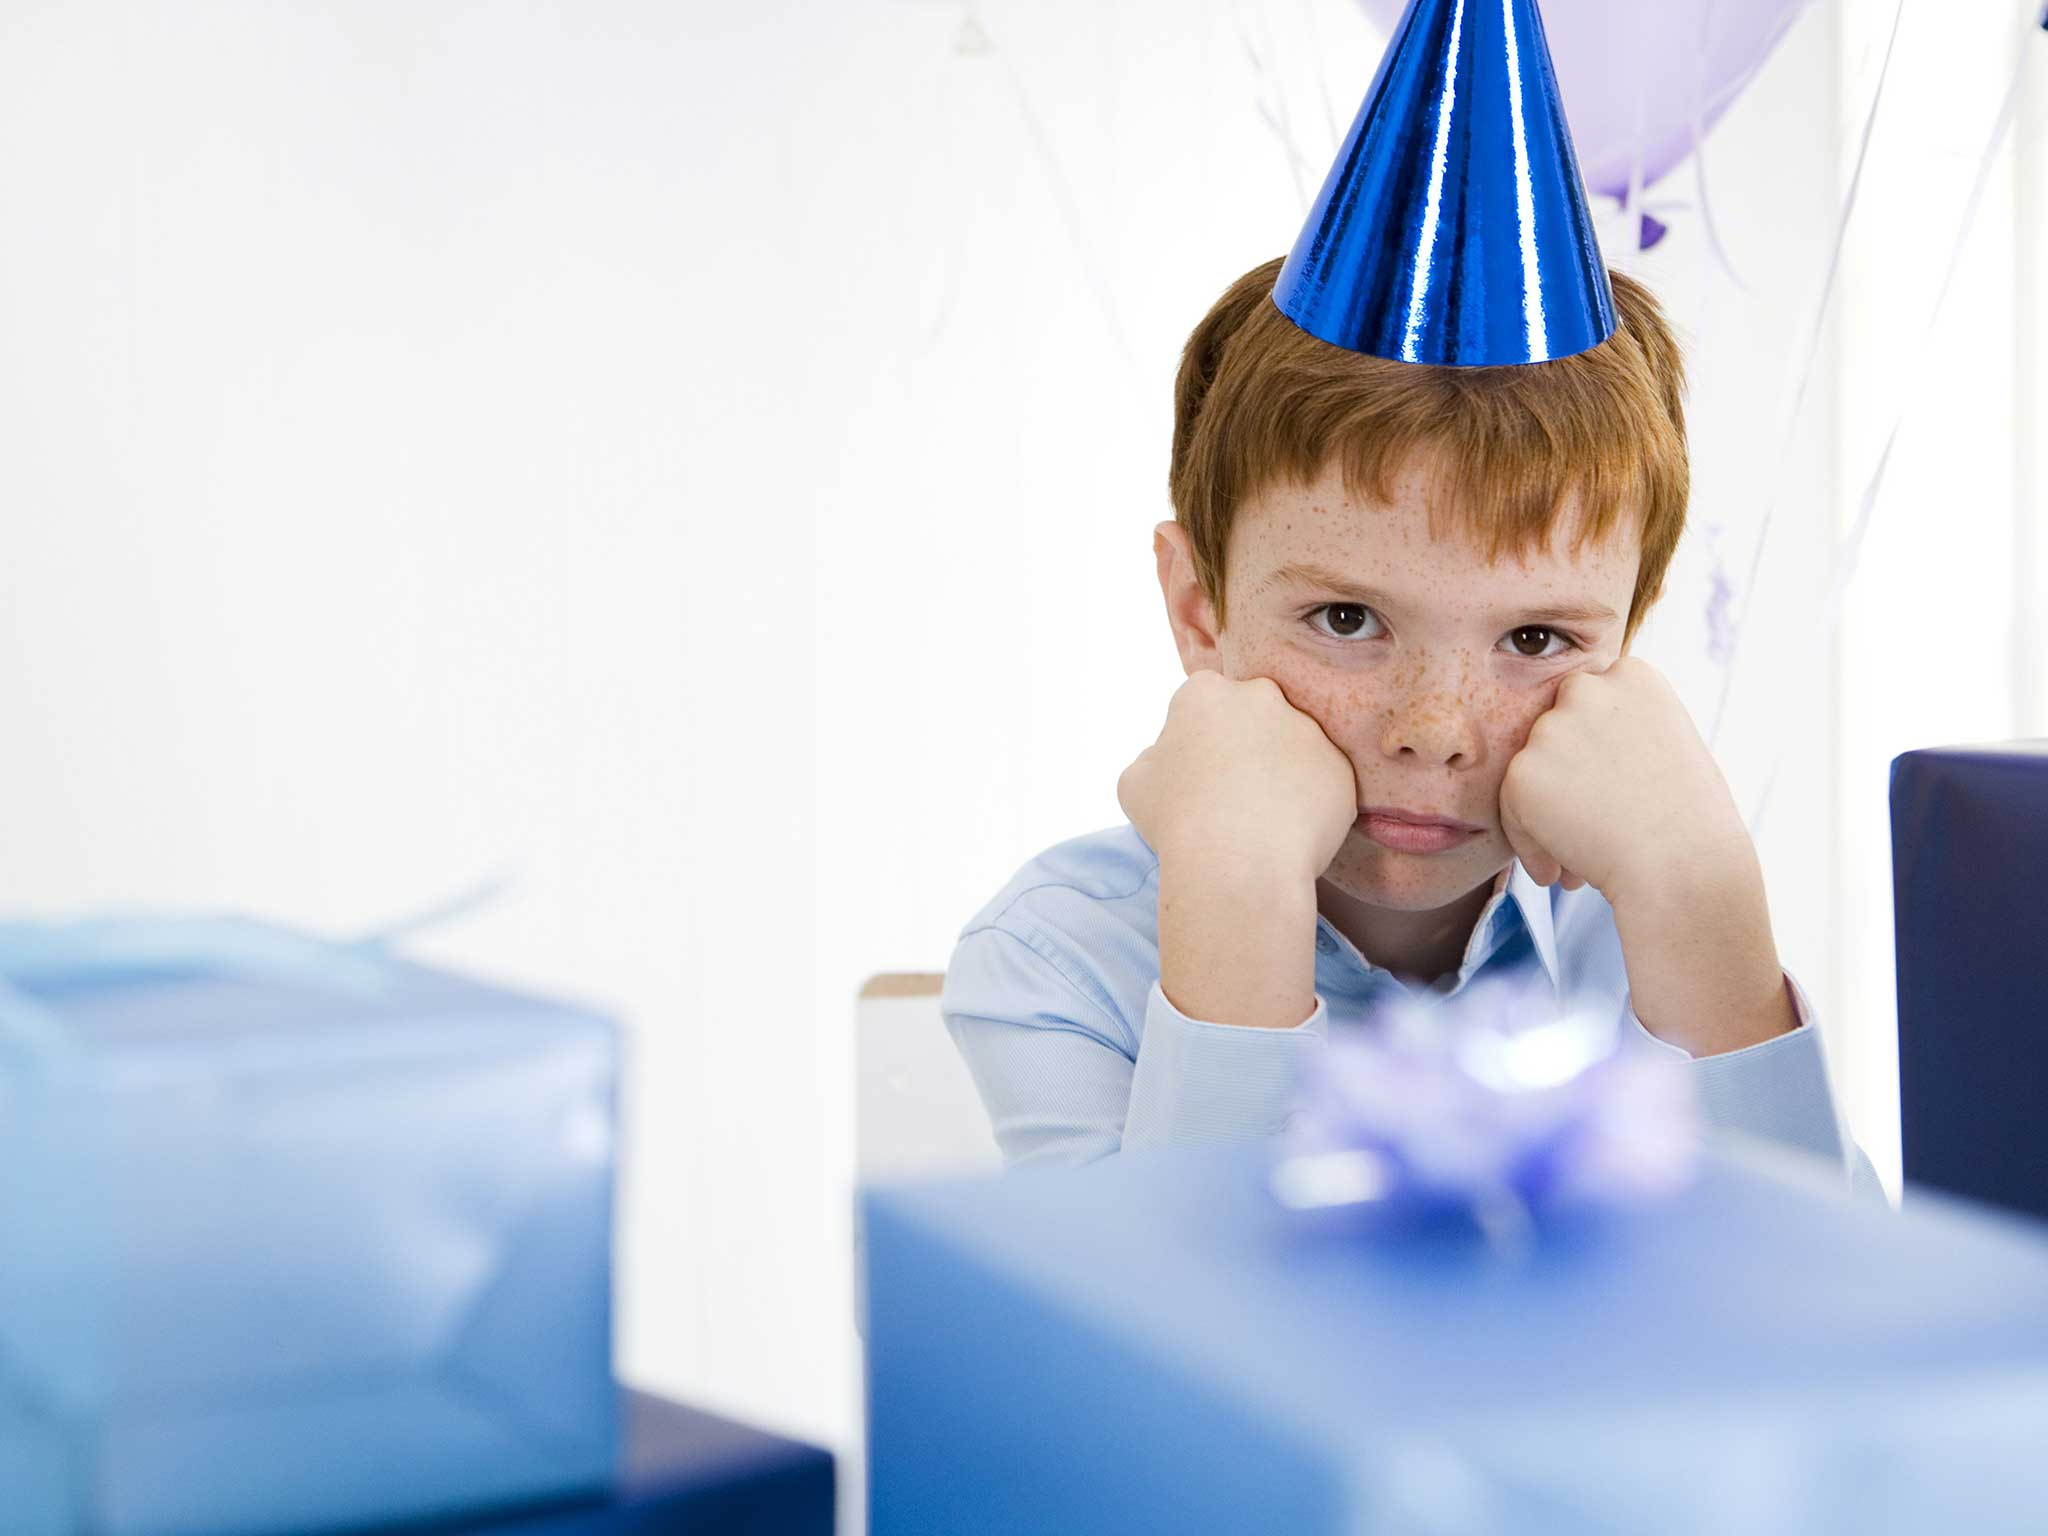 16 December Is The Worst Date For A Birthday Research Finds